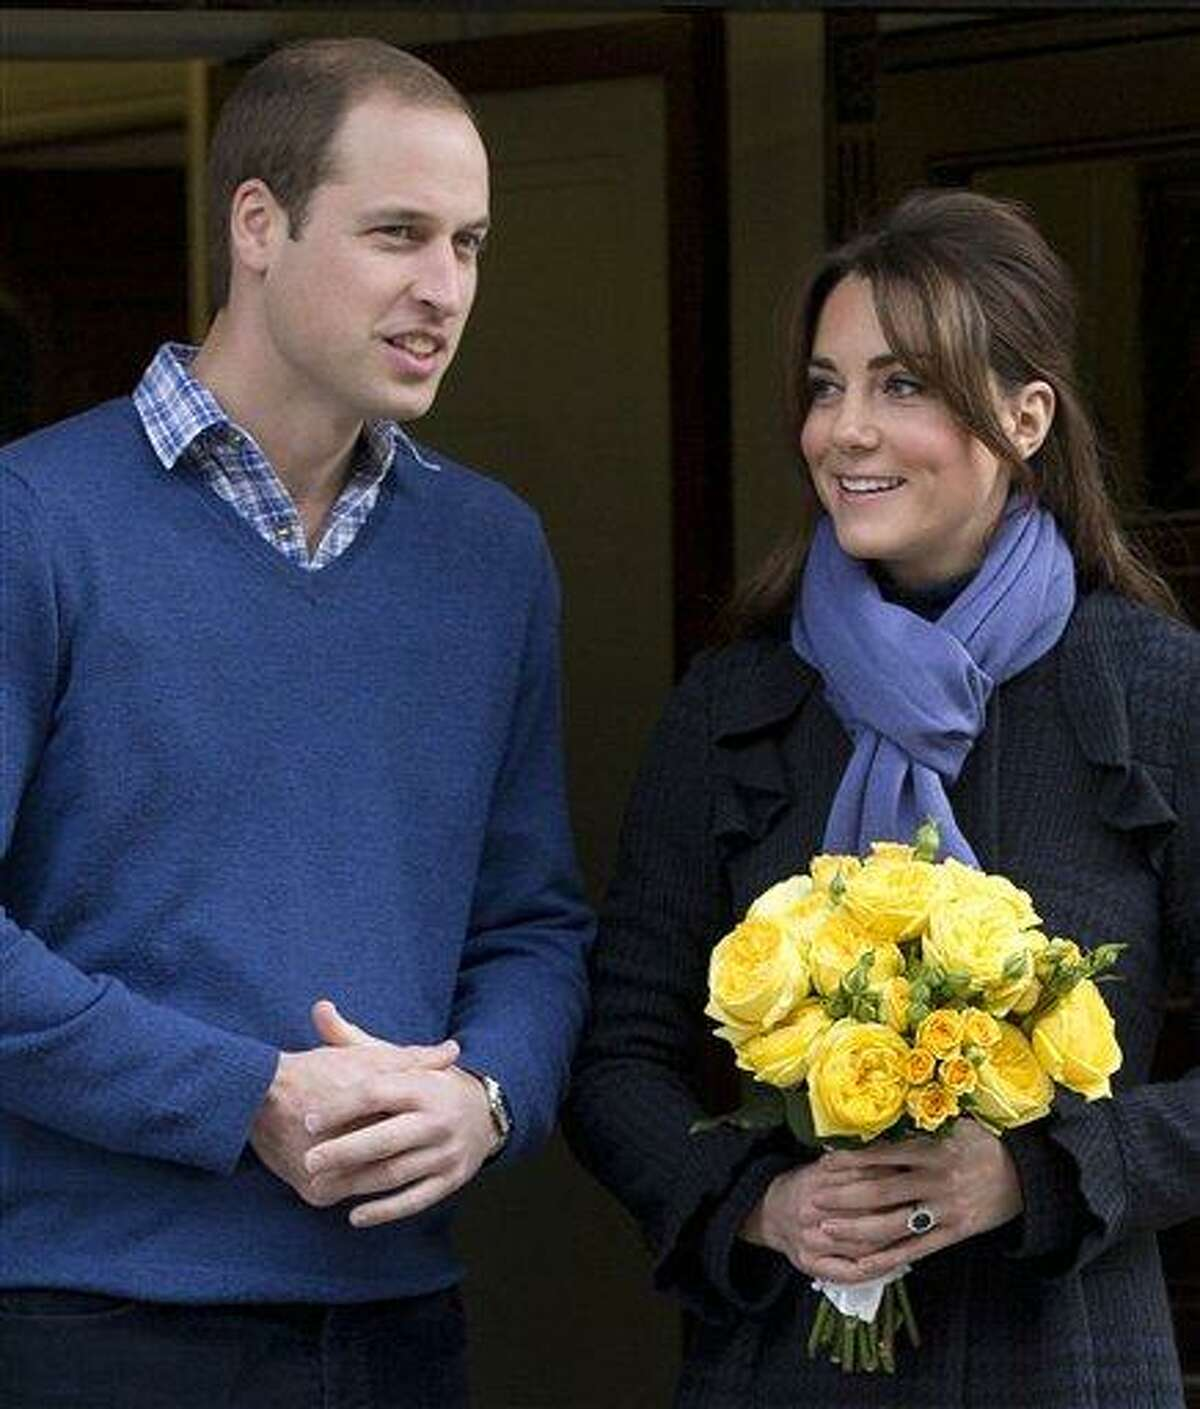 Britain's Prince William stands next to his wife Kate, Duchess of Cambridge as she leaves the King Edward VII hospital in central London Thursday. AP Photo/Alastair Grant